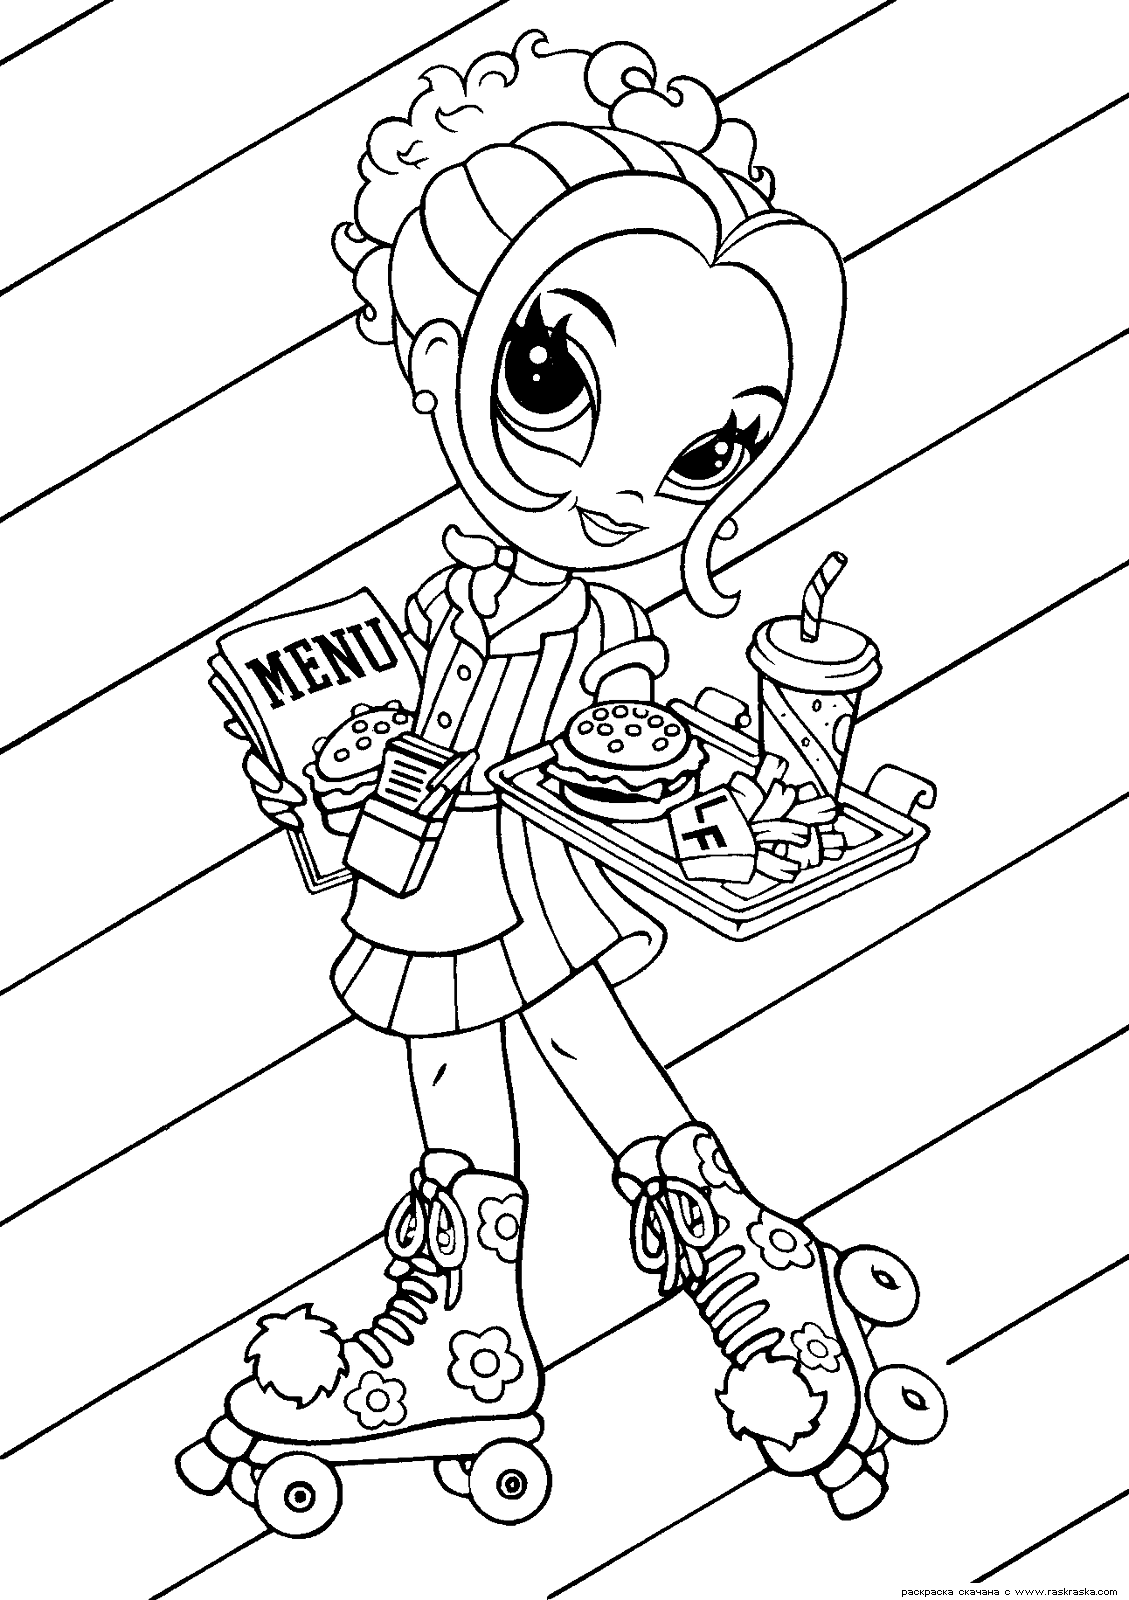 Free roller skating coloring pages - Lisa Frank Coloring Page Featuring Glamour Girl As A Roller Skating Waitress